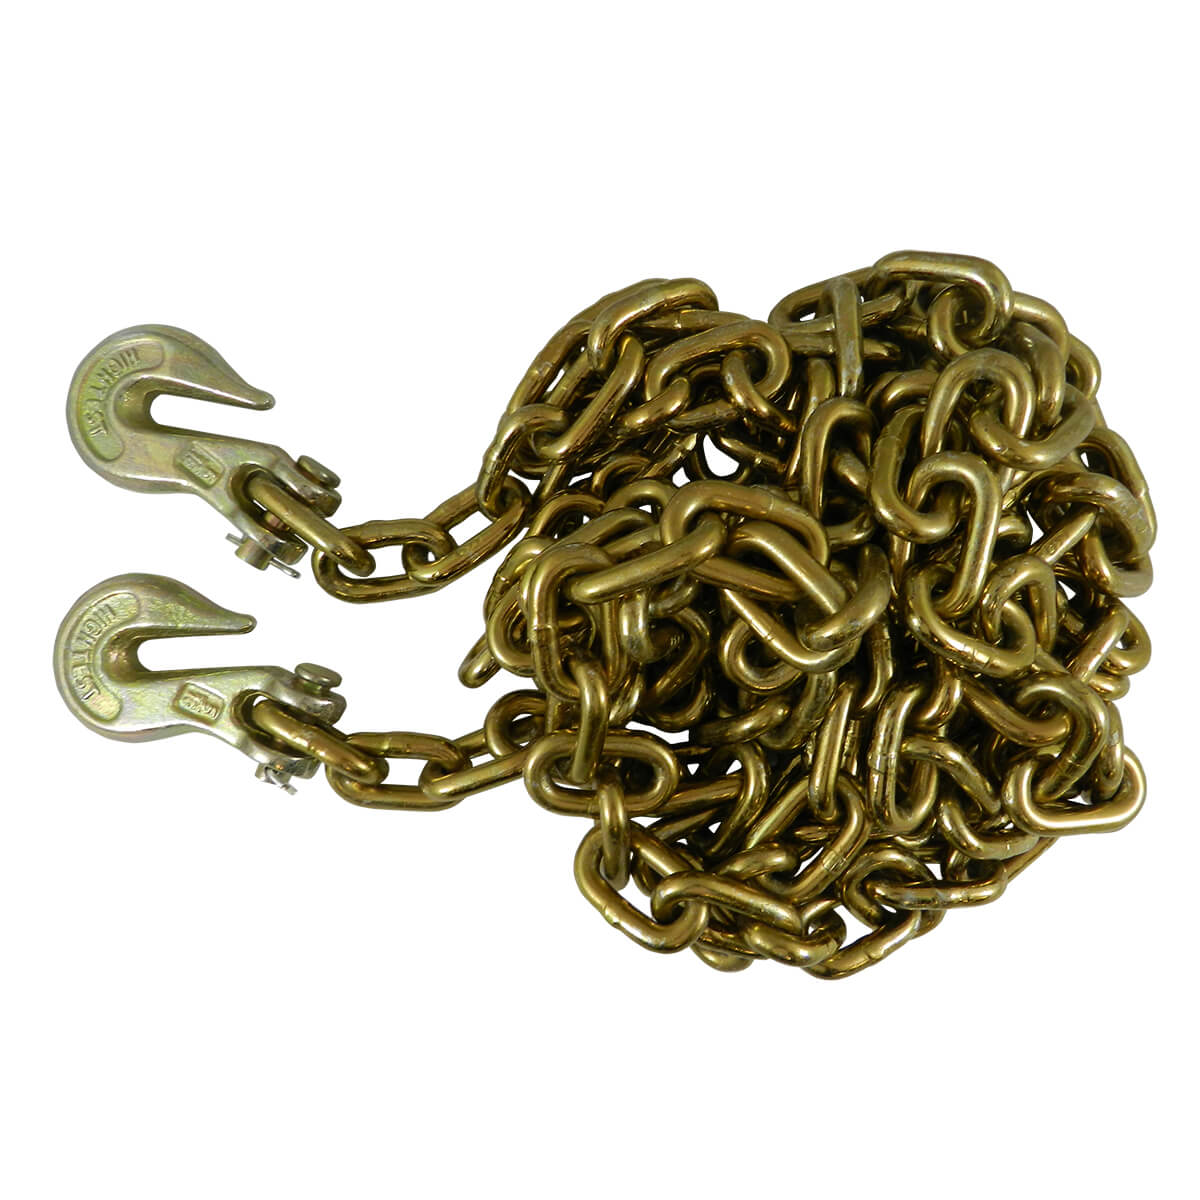 """Chain with Clevis Grab Hooks - Grade 70 - 5/16"""" x 14'"""